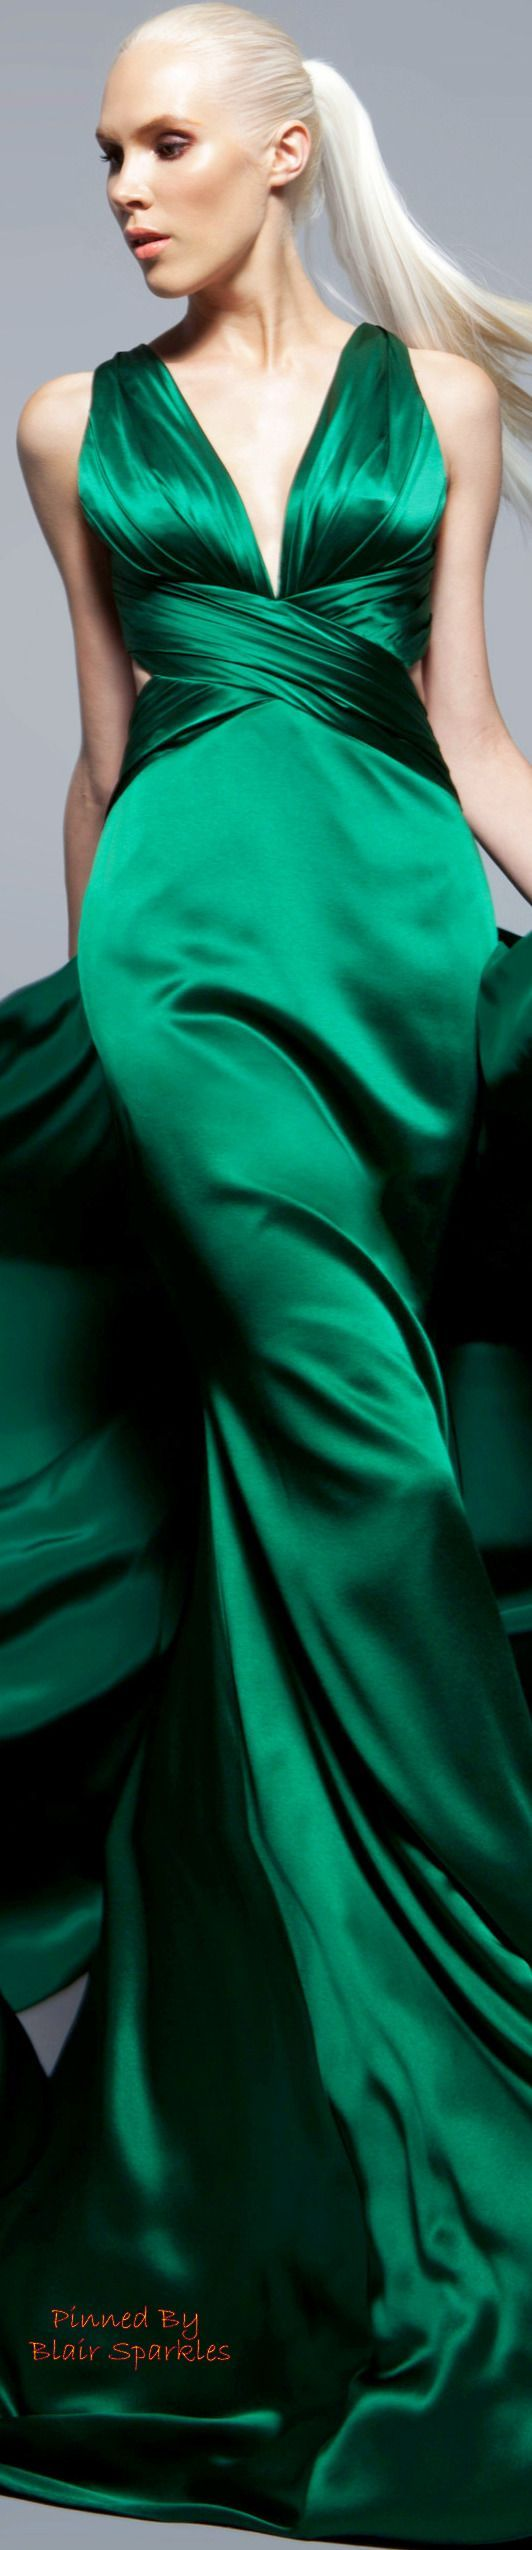 Green Evening Gown